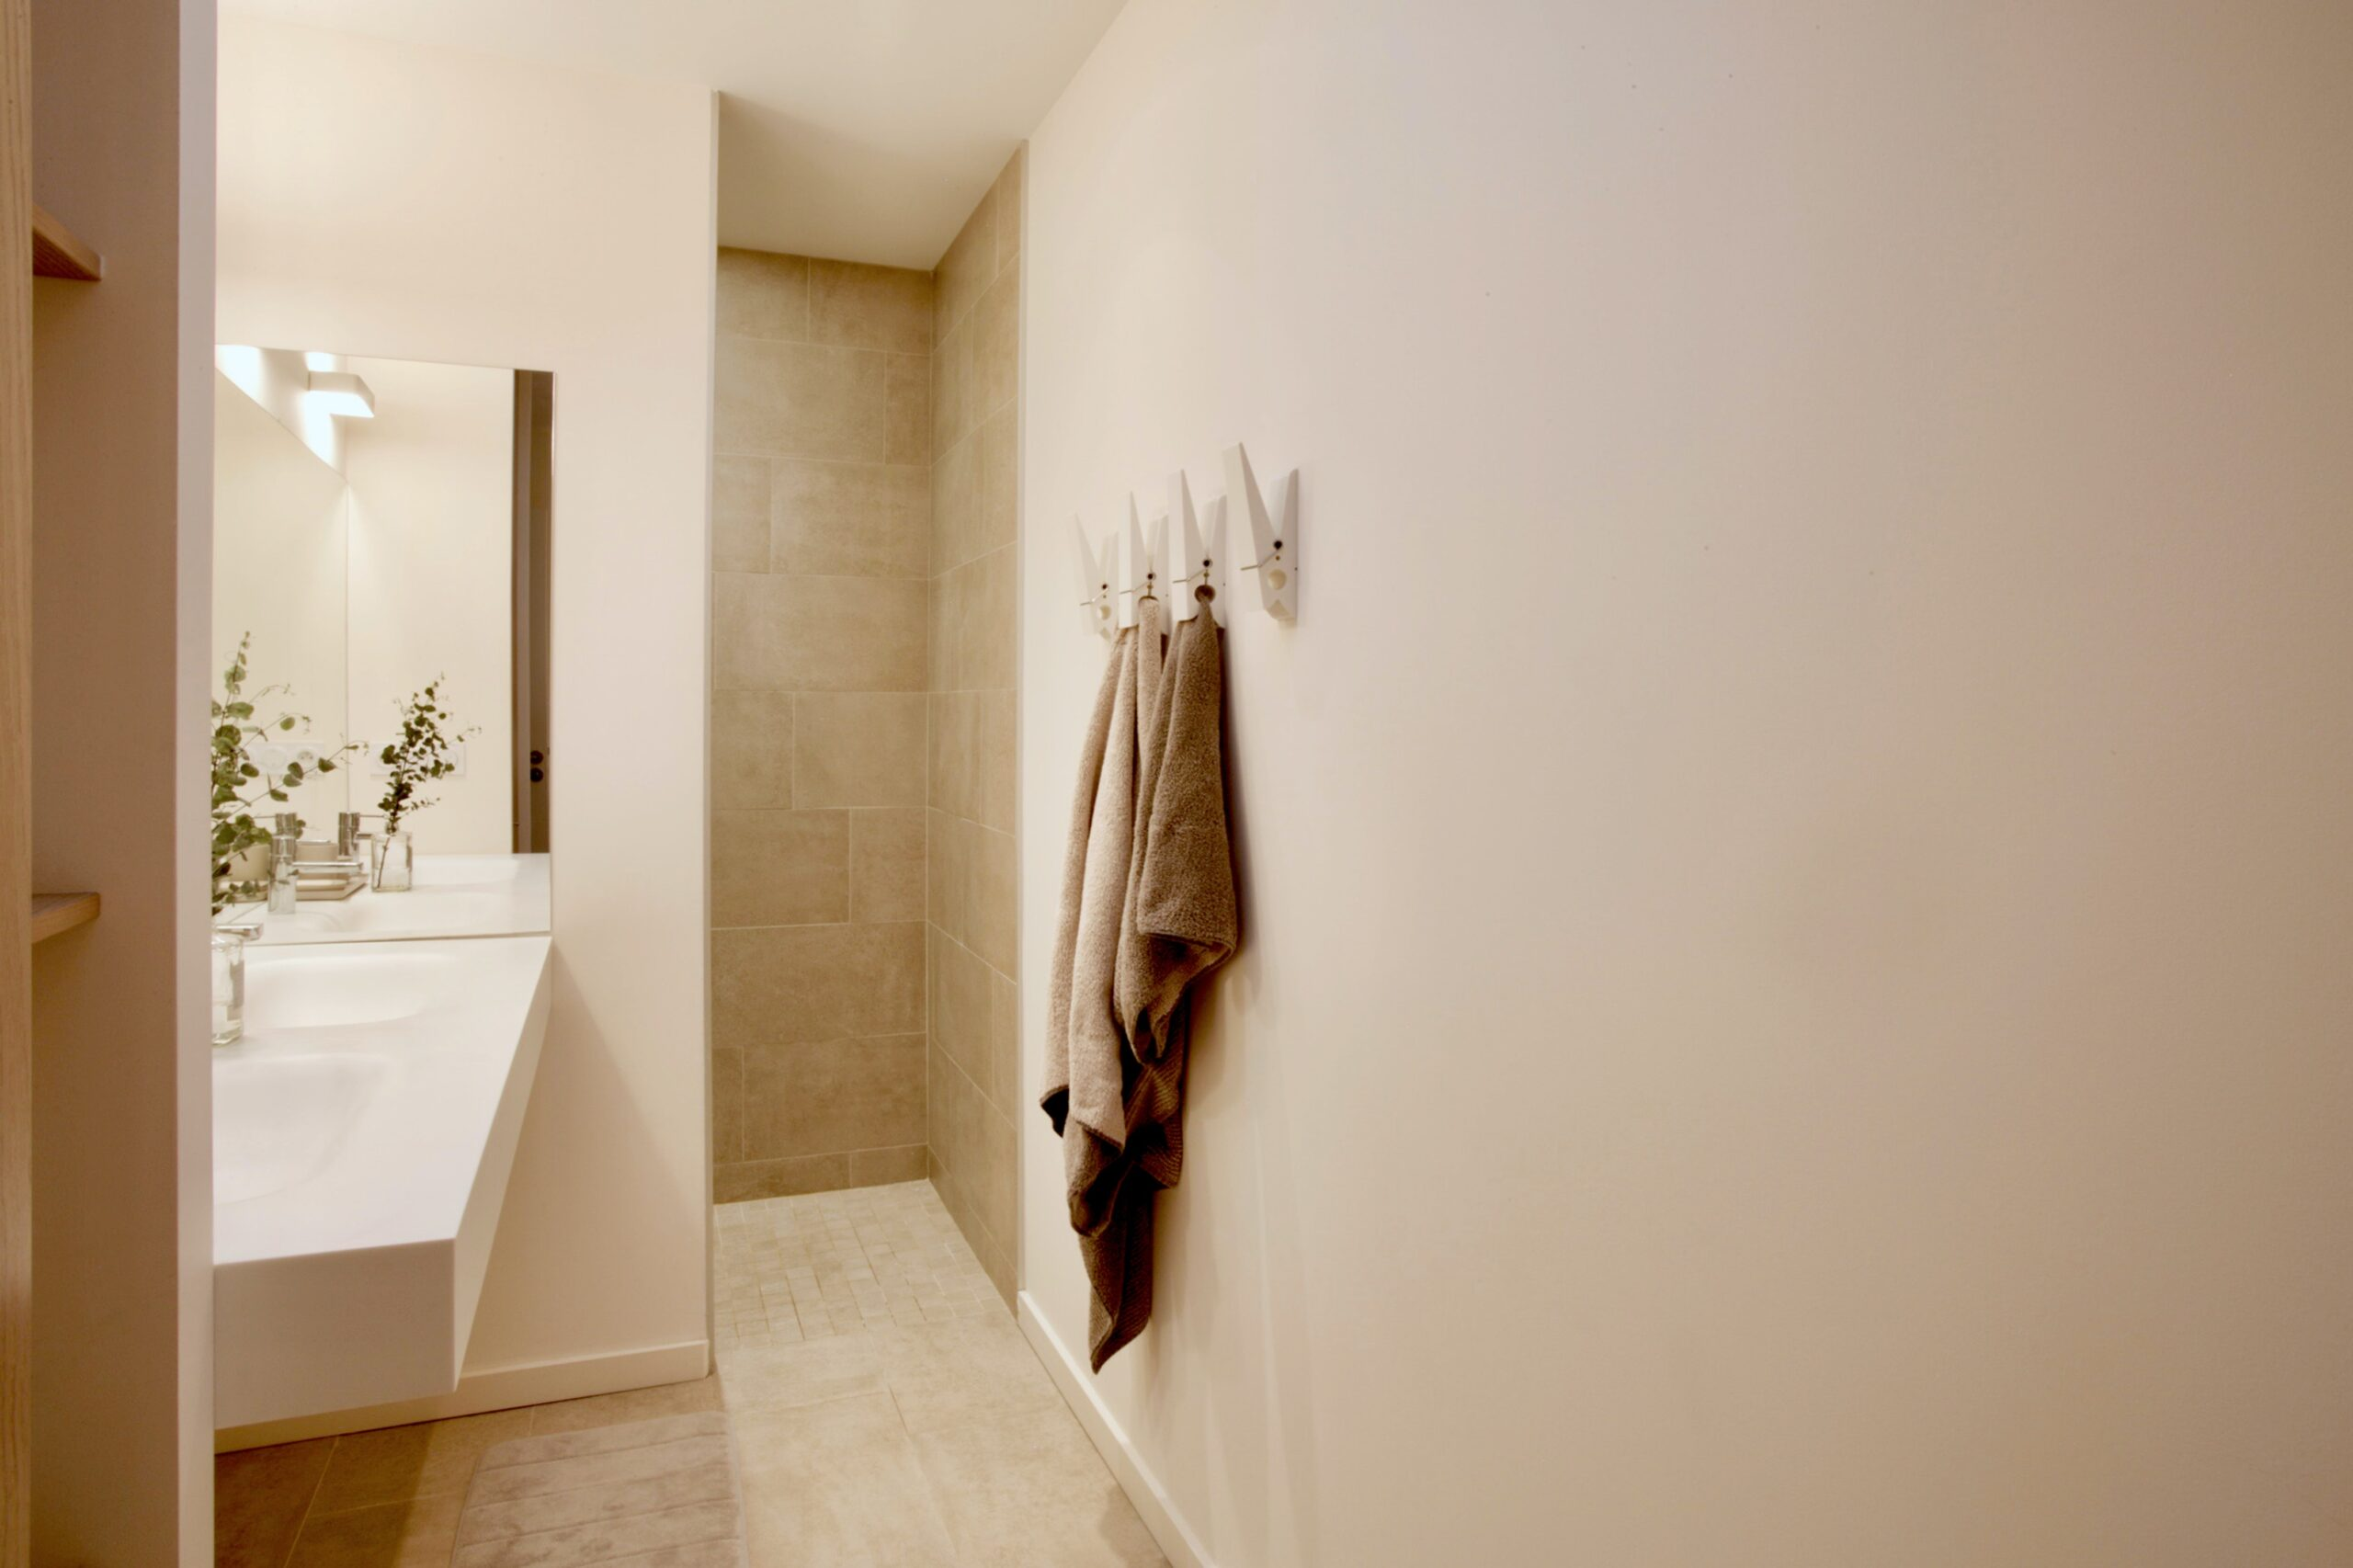 2021 Tricks and Tips for Painting Your Bathroom